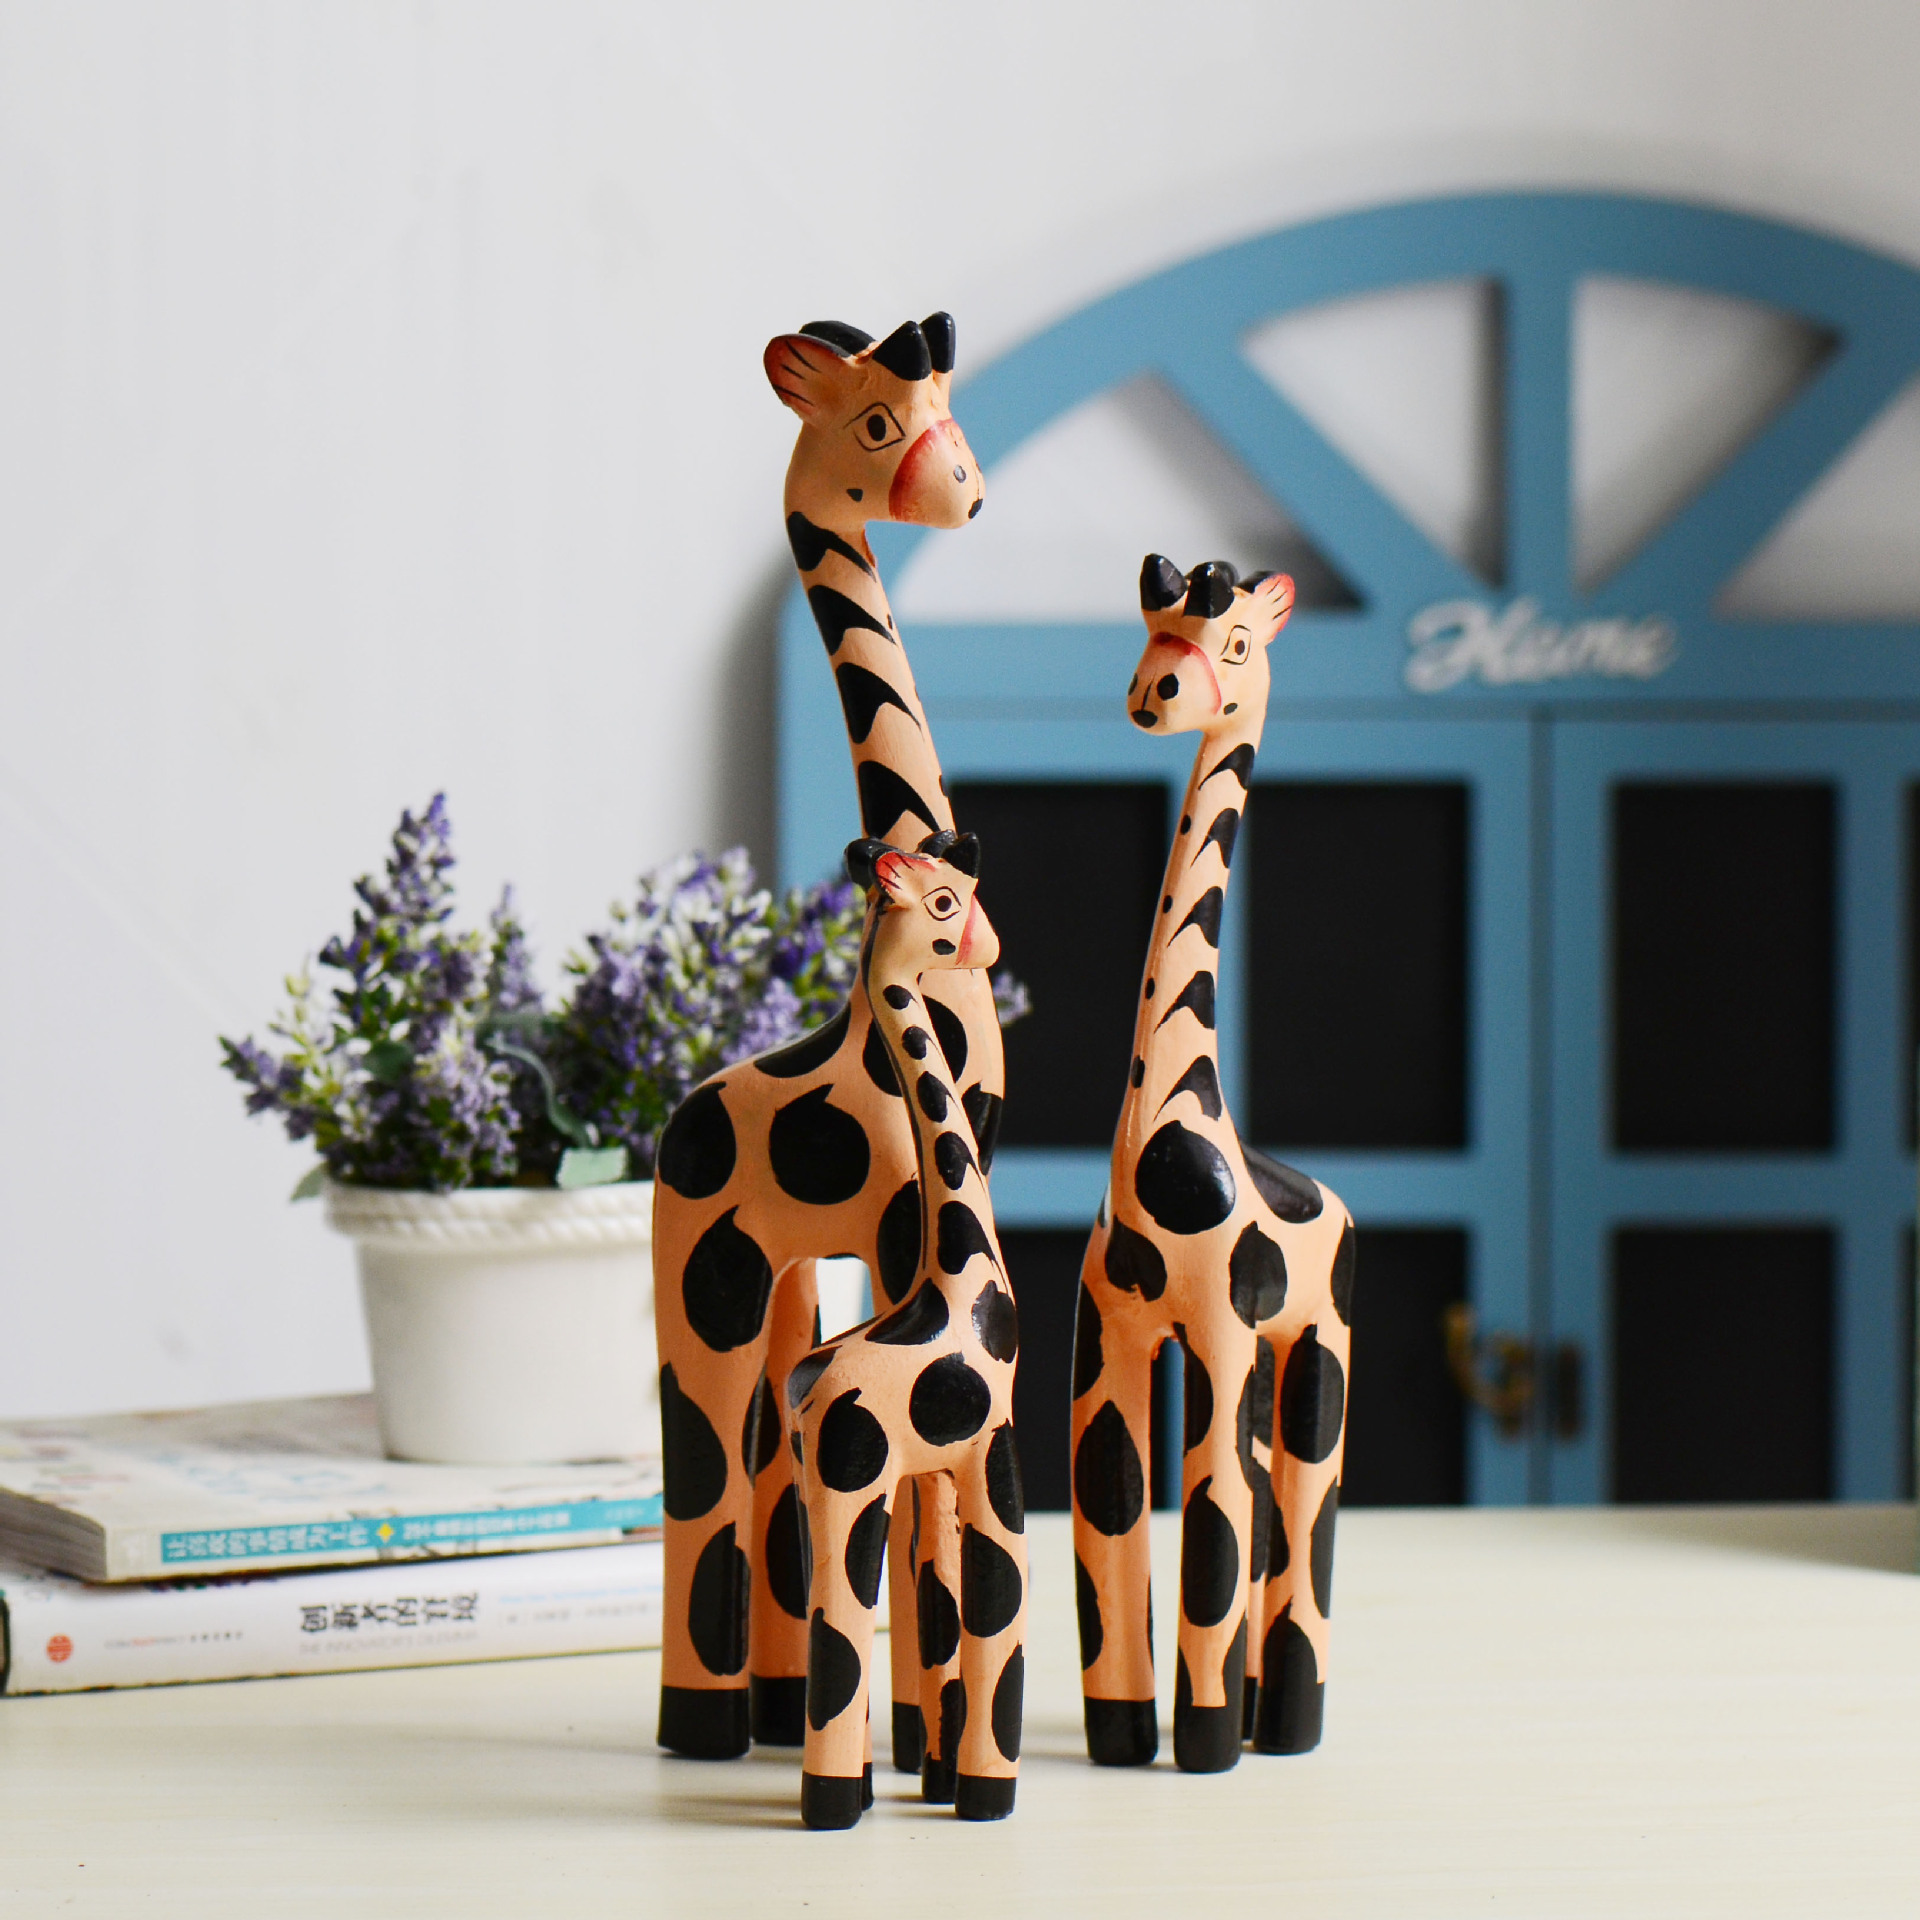 Wooden animals ornaments - Giraffe Color Decoration Hand Painted Craft Gift Animal Ornaments Wood Table Home Decoration Accessories Ornament